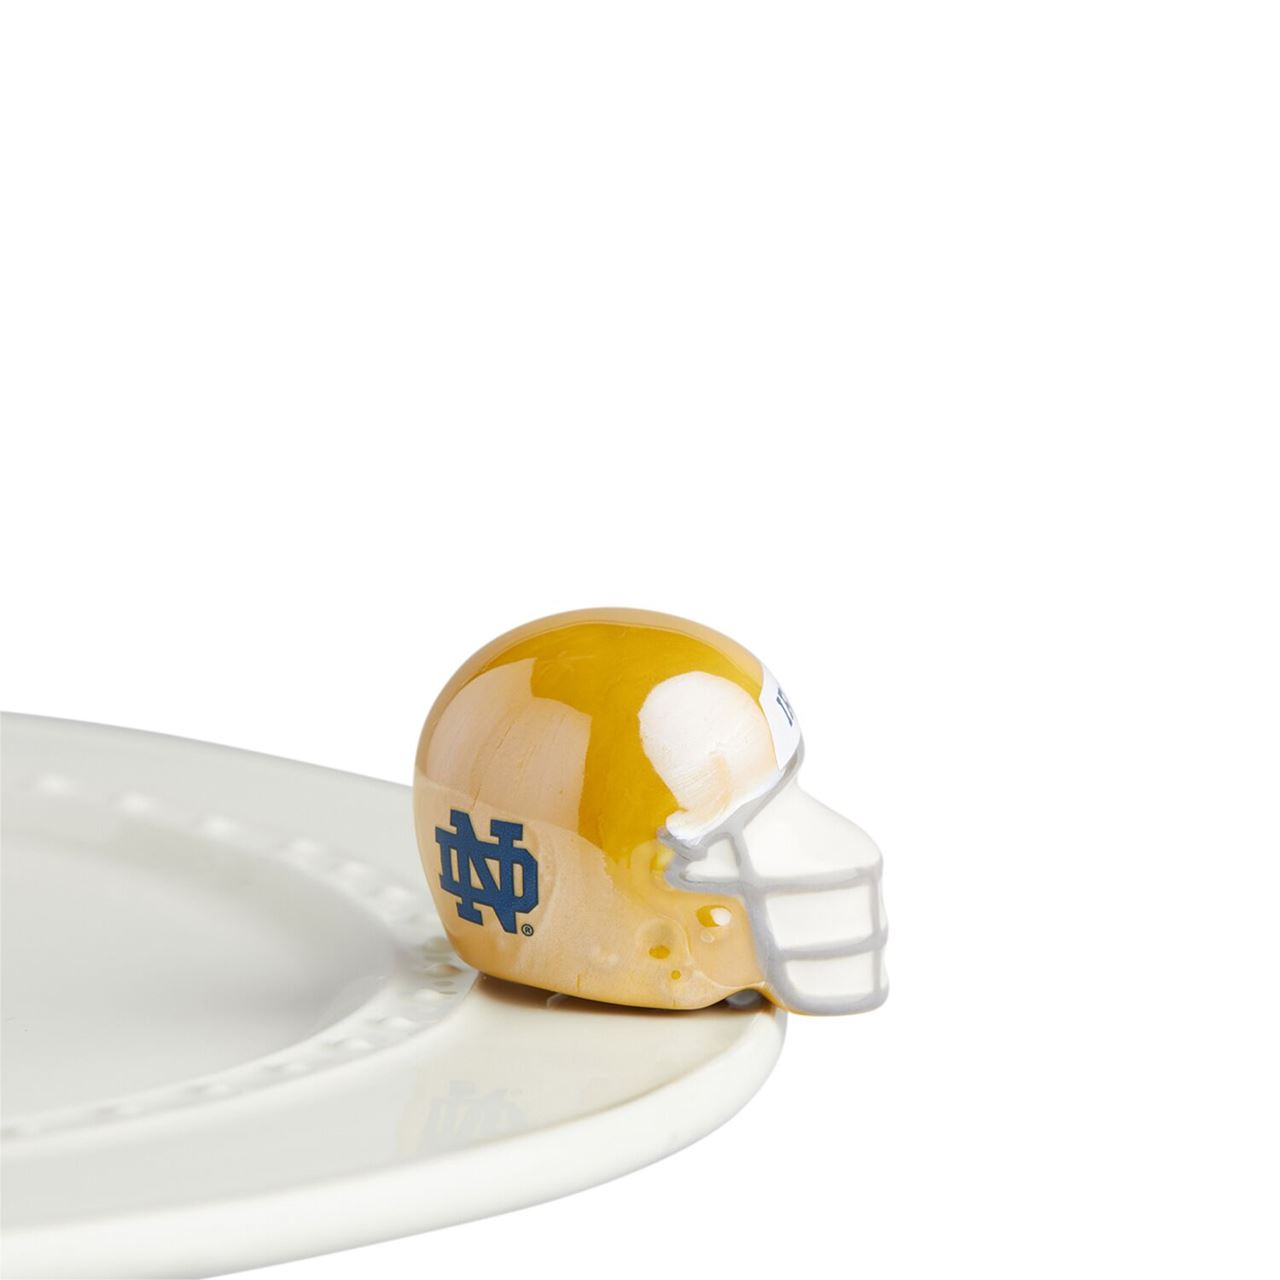 Notre Dame Helmet Mini by Nora Fleming